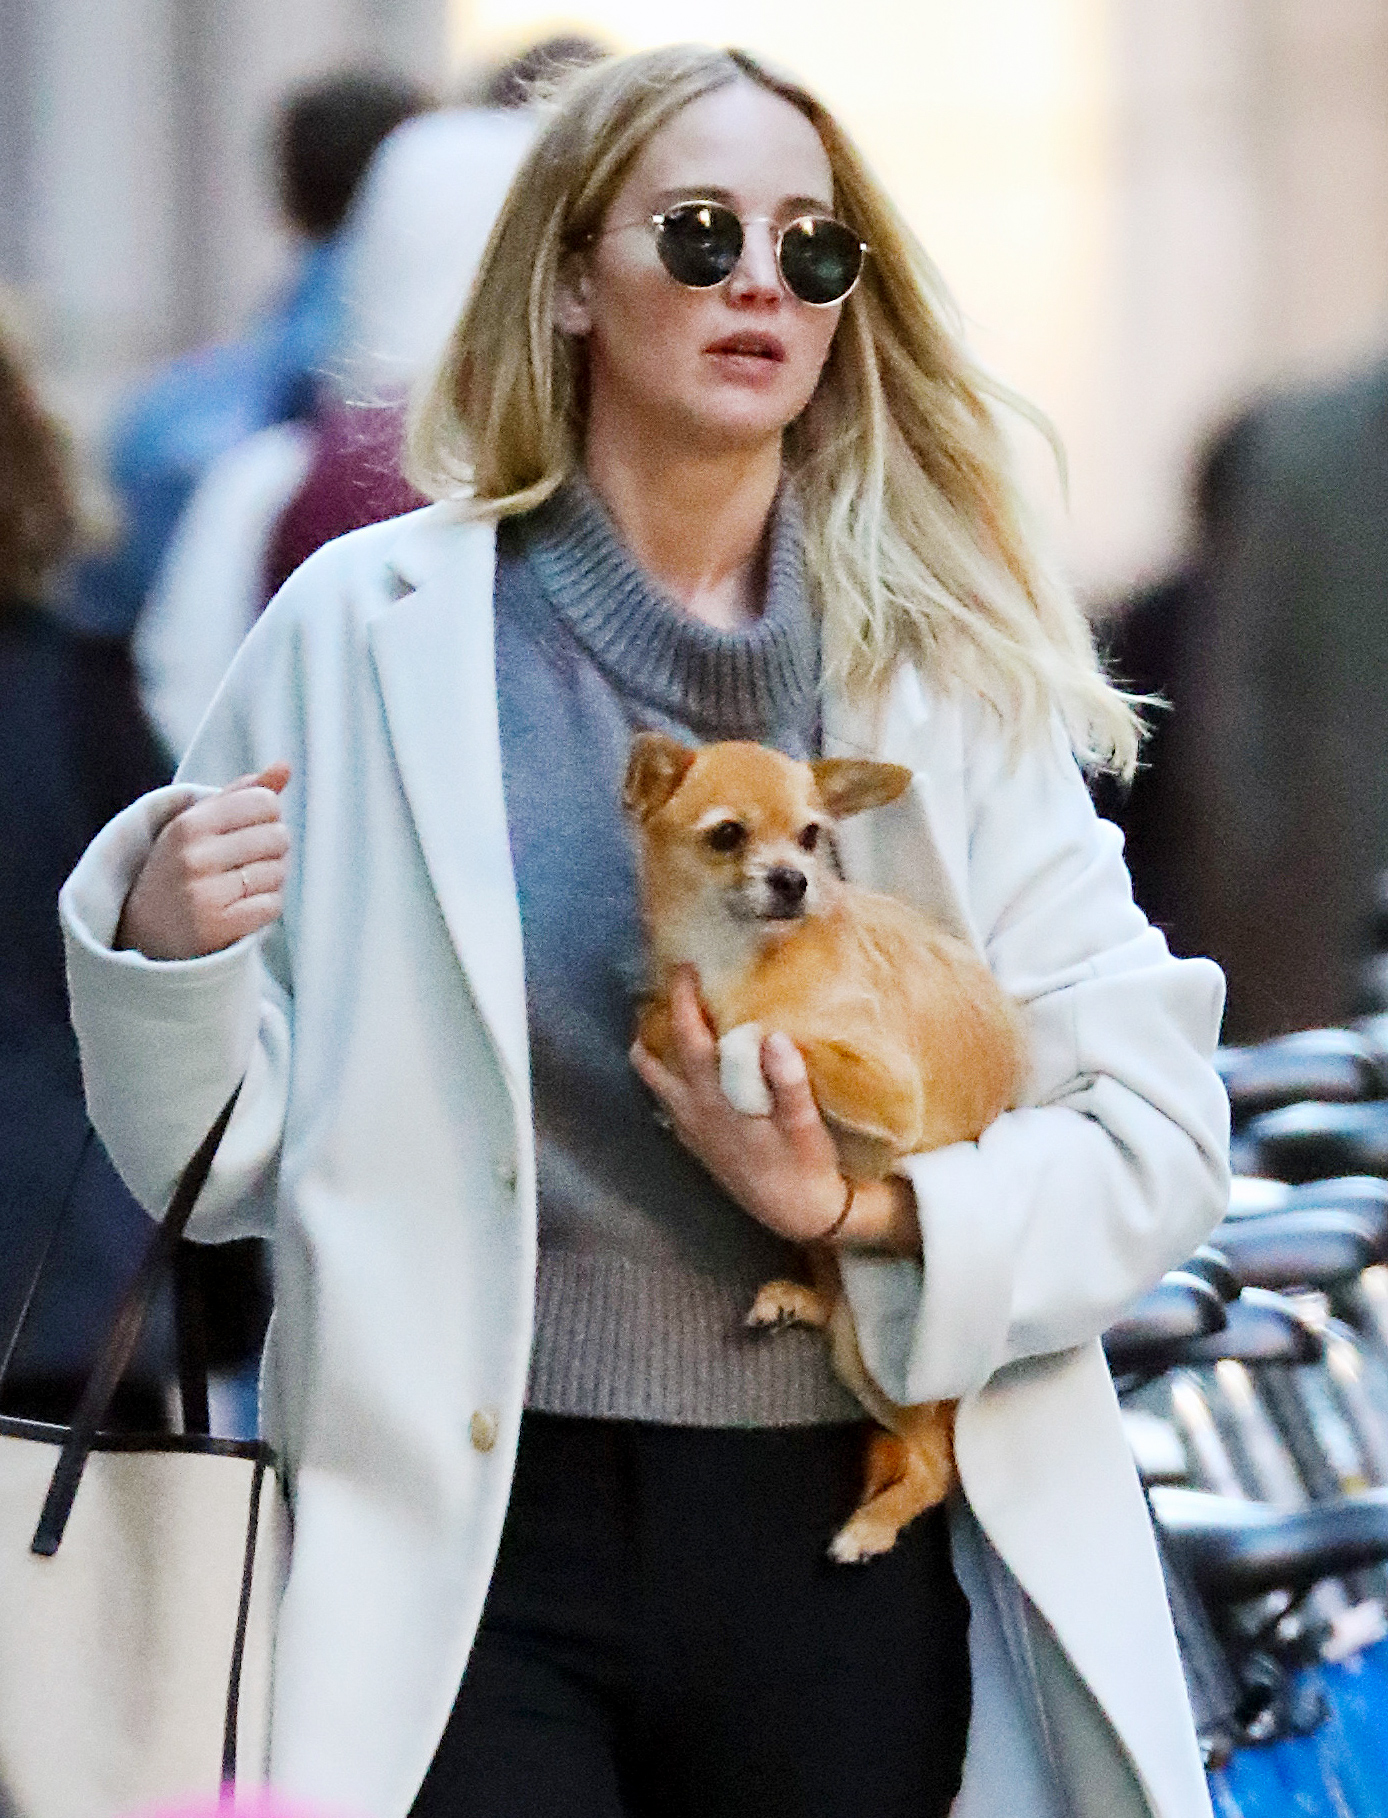 EXCLUSIVE: Jennifer Lawrence Cradles Her Dog Pippi while Out and About in New York City